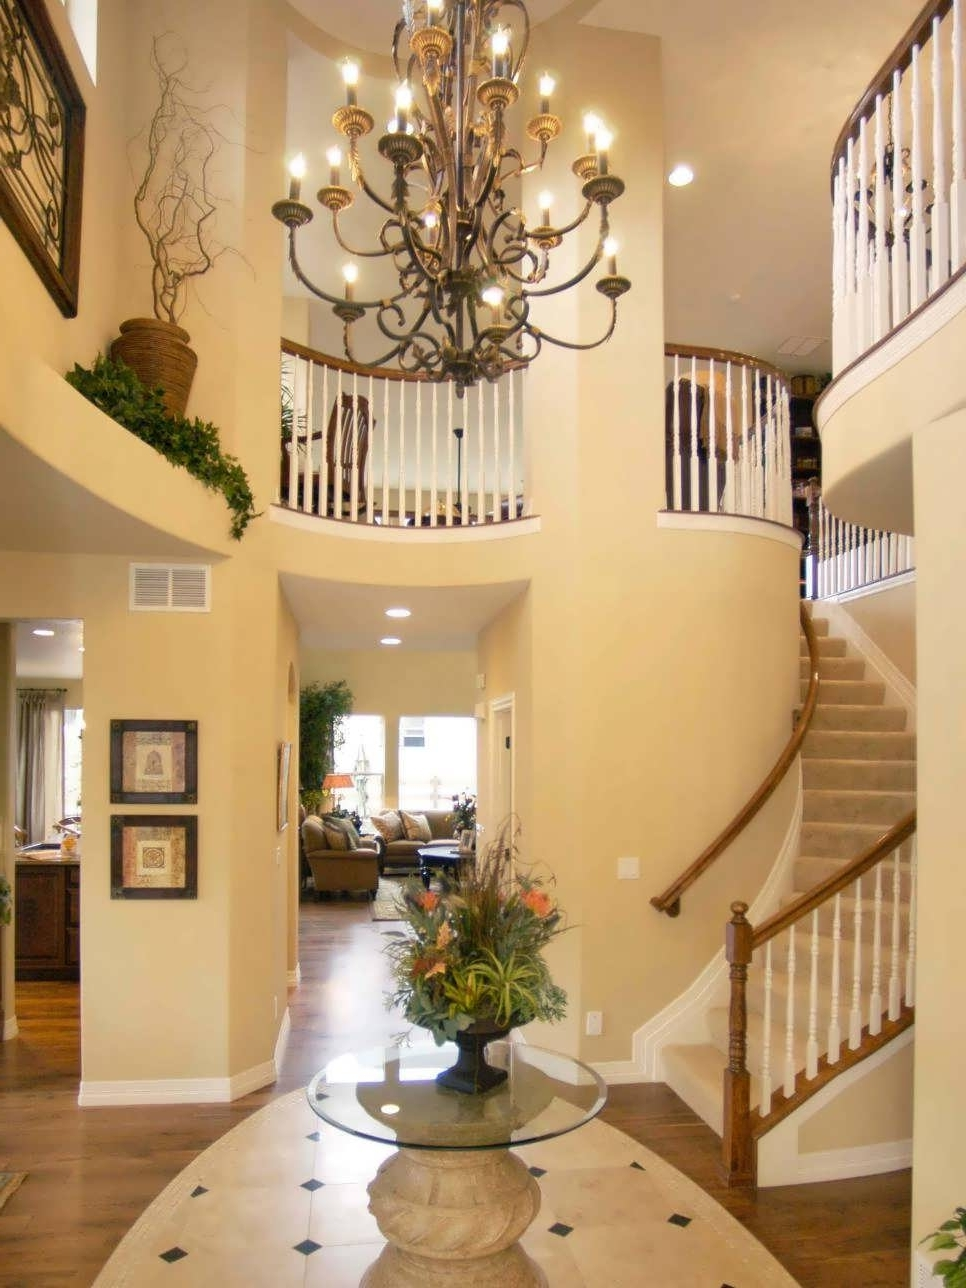 Widely Used Chandeliers Design : Fabulous Large Orb Chandelier Foyer Chandeliers Inside Hanging Outdoor Entrance Lights (View 10 of 20)